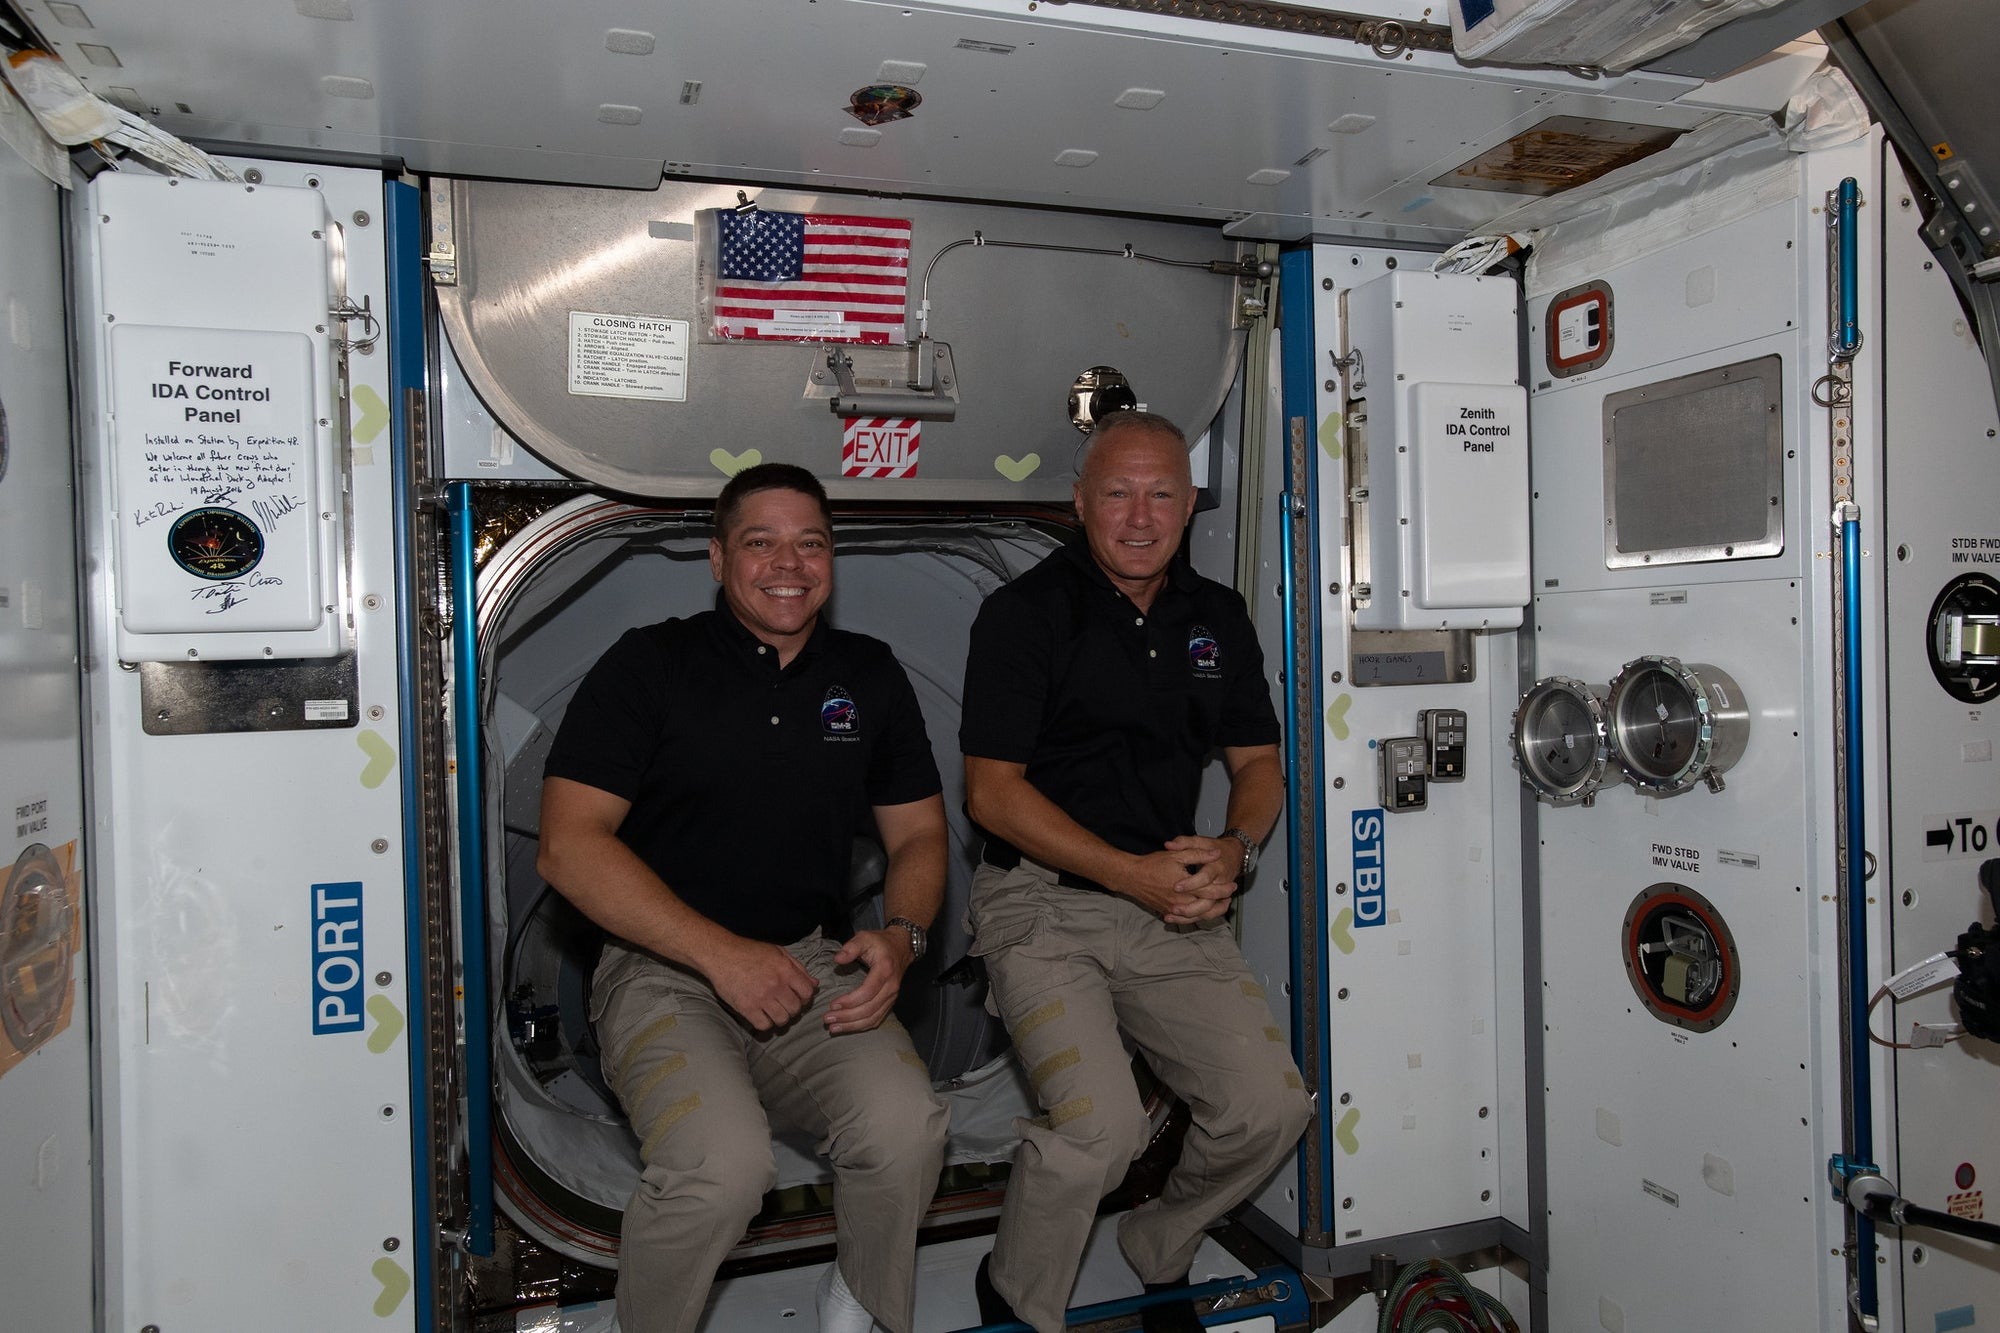 NASA announces Astronauts will return aboard SpaceX Crew Dragon early August